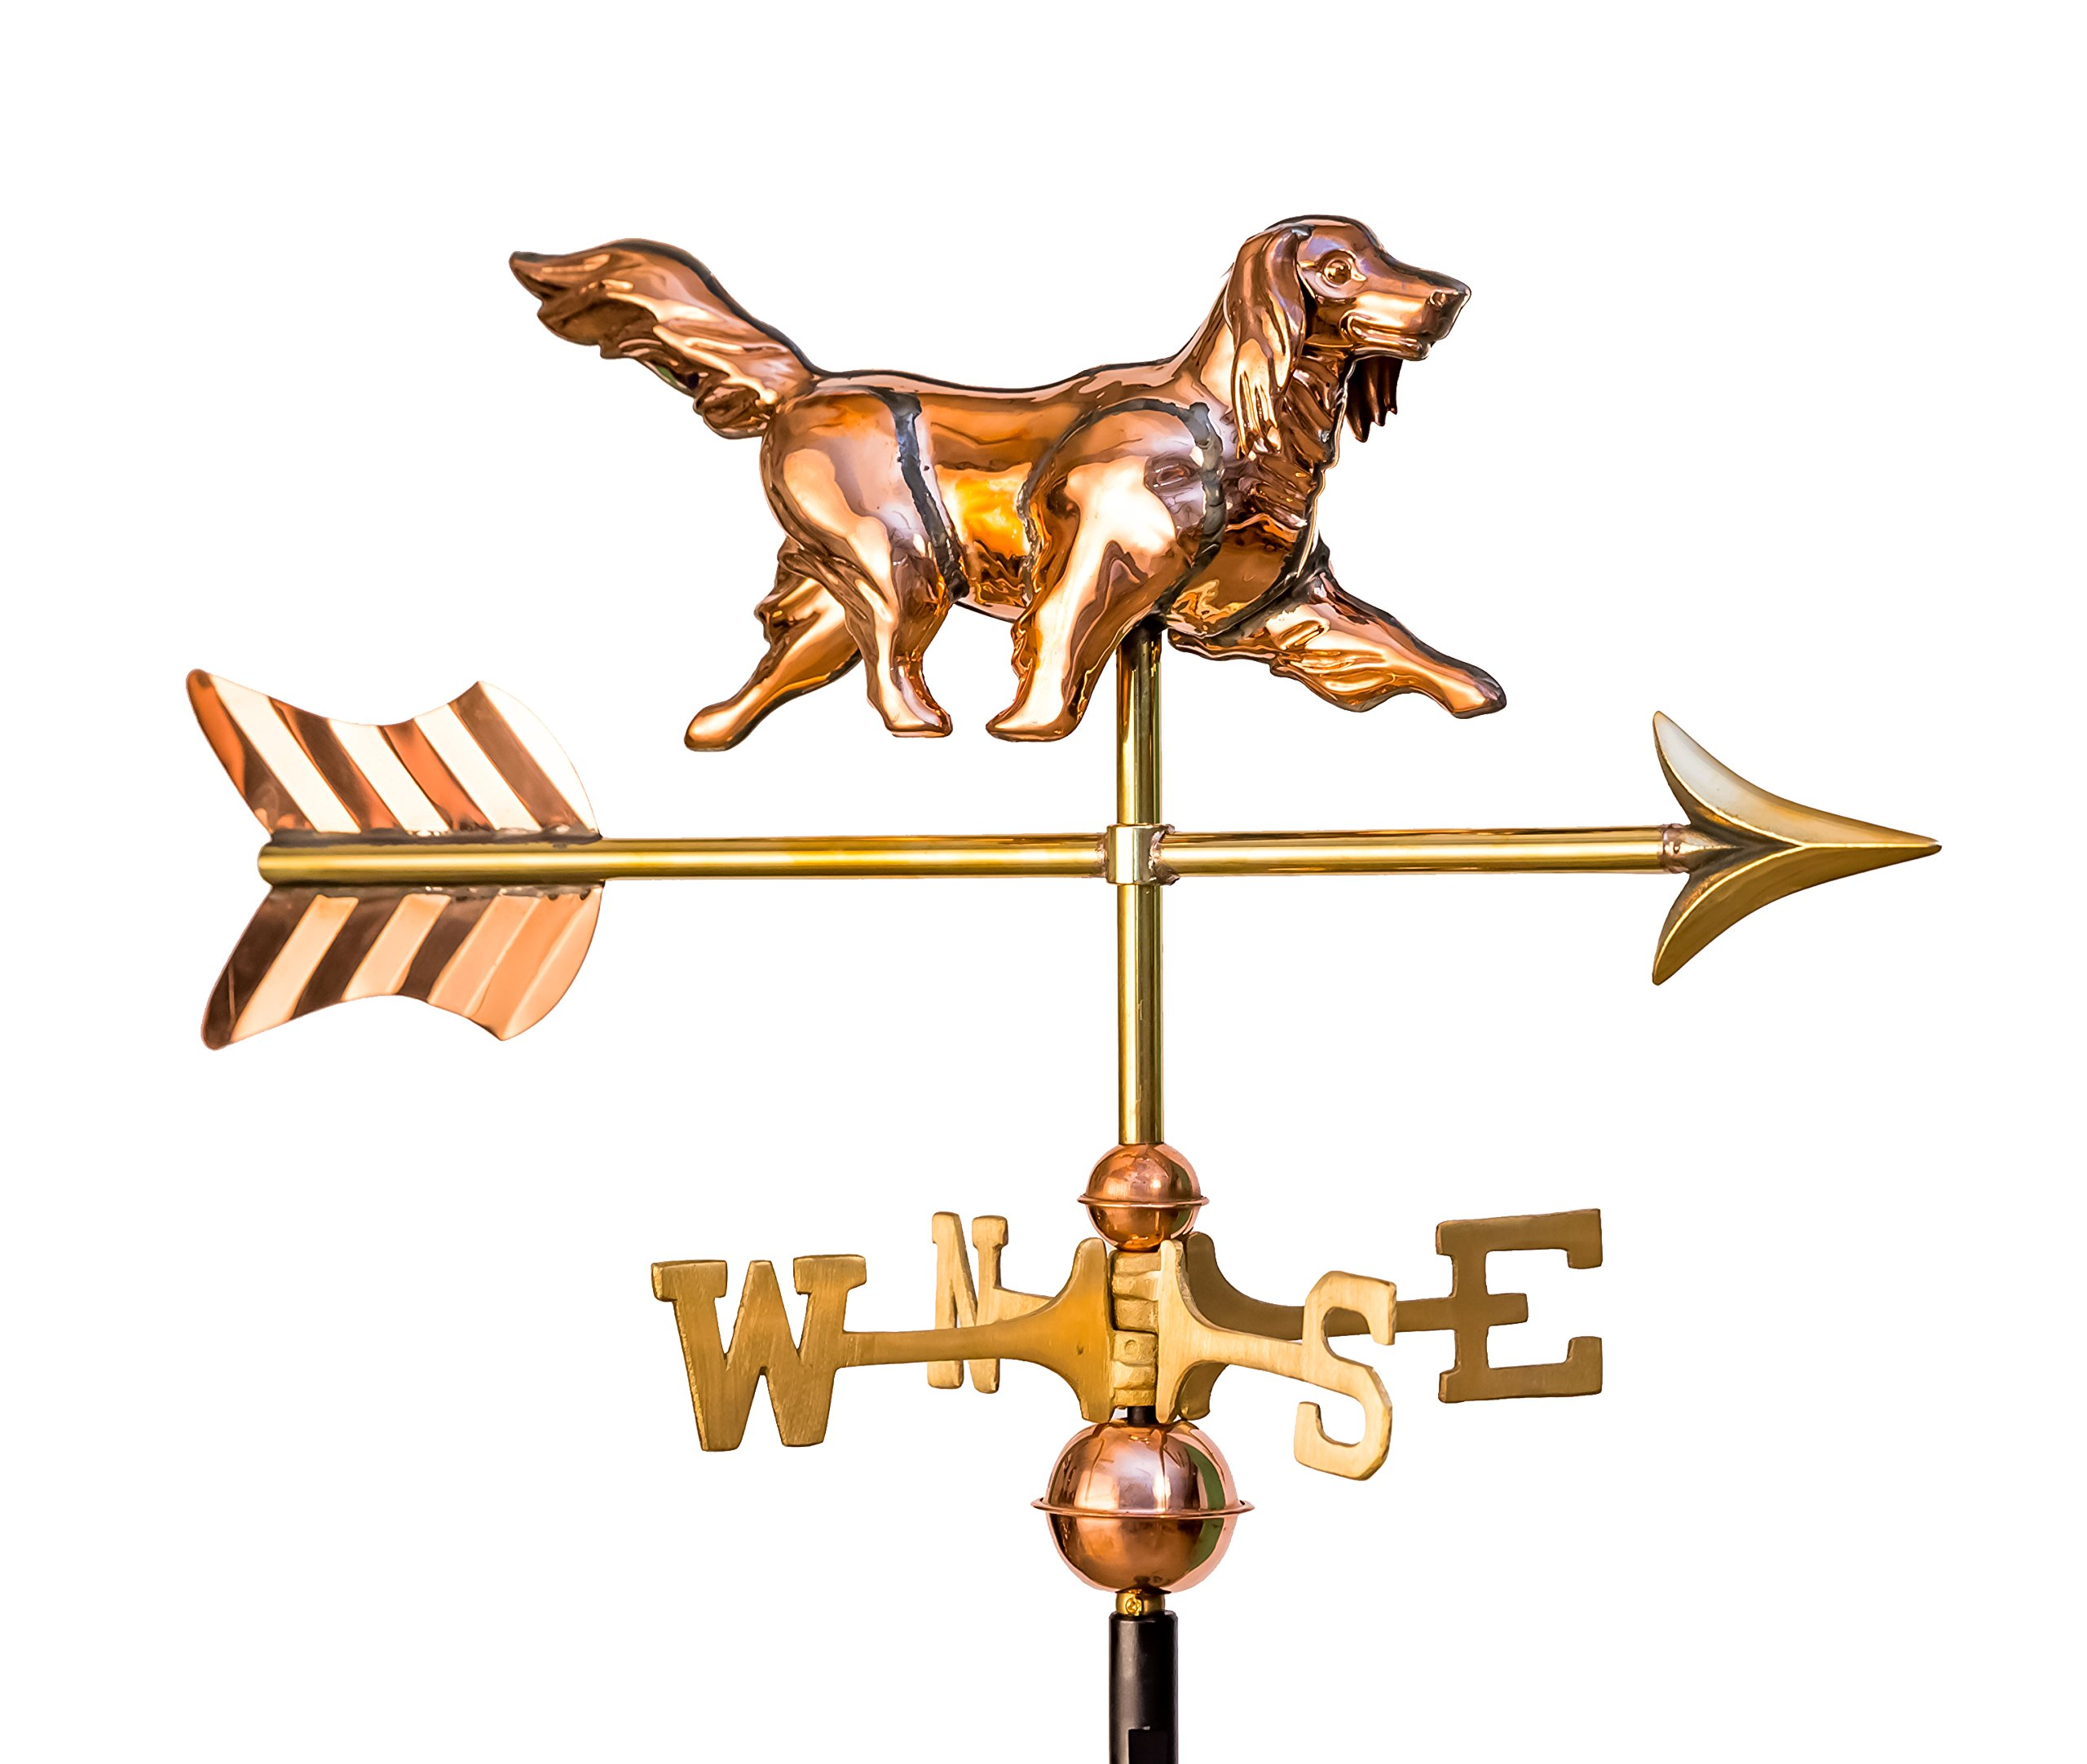 East Coast Weathervanes and Cupolas Garden Golden Retriever Weathervane Polished Copper (Copper, W/ Roof Mount)